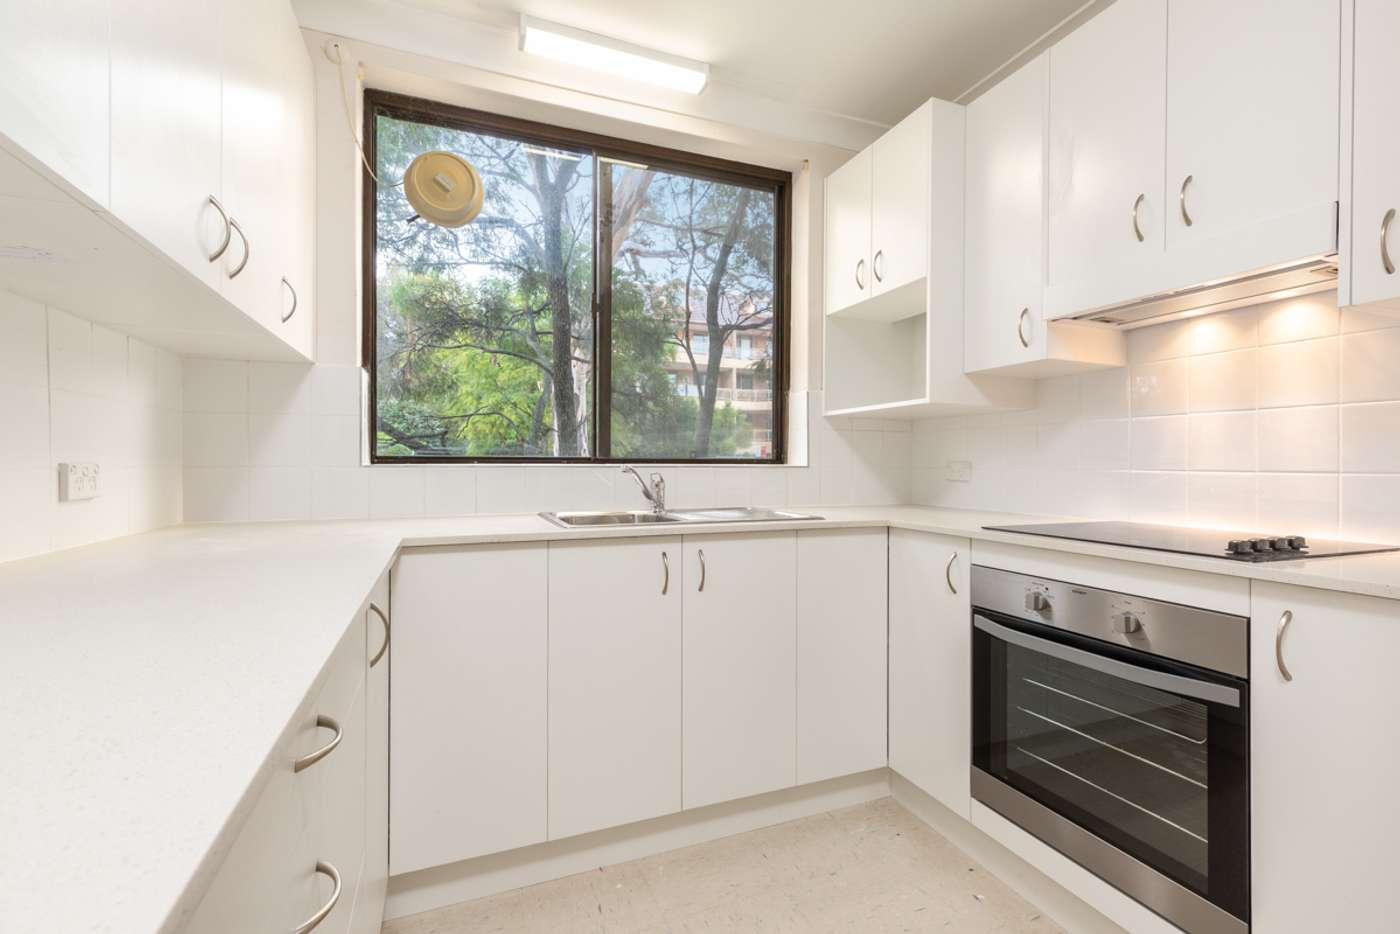 Main view of Homely unit listing, 19/10 Eddy Road, Chatswood NSW 2067